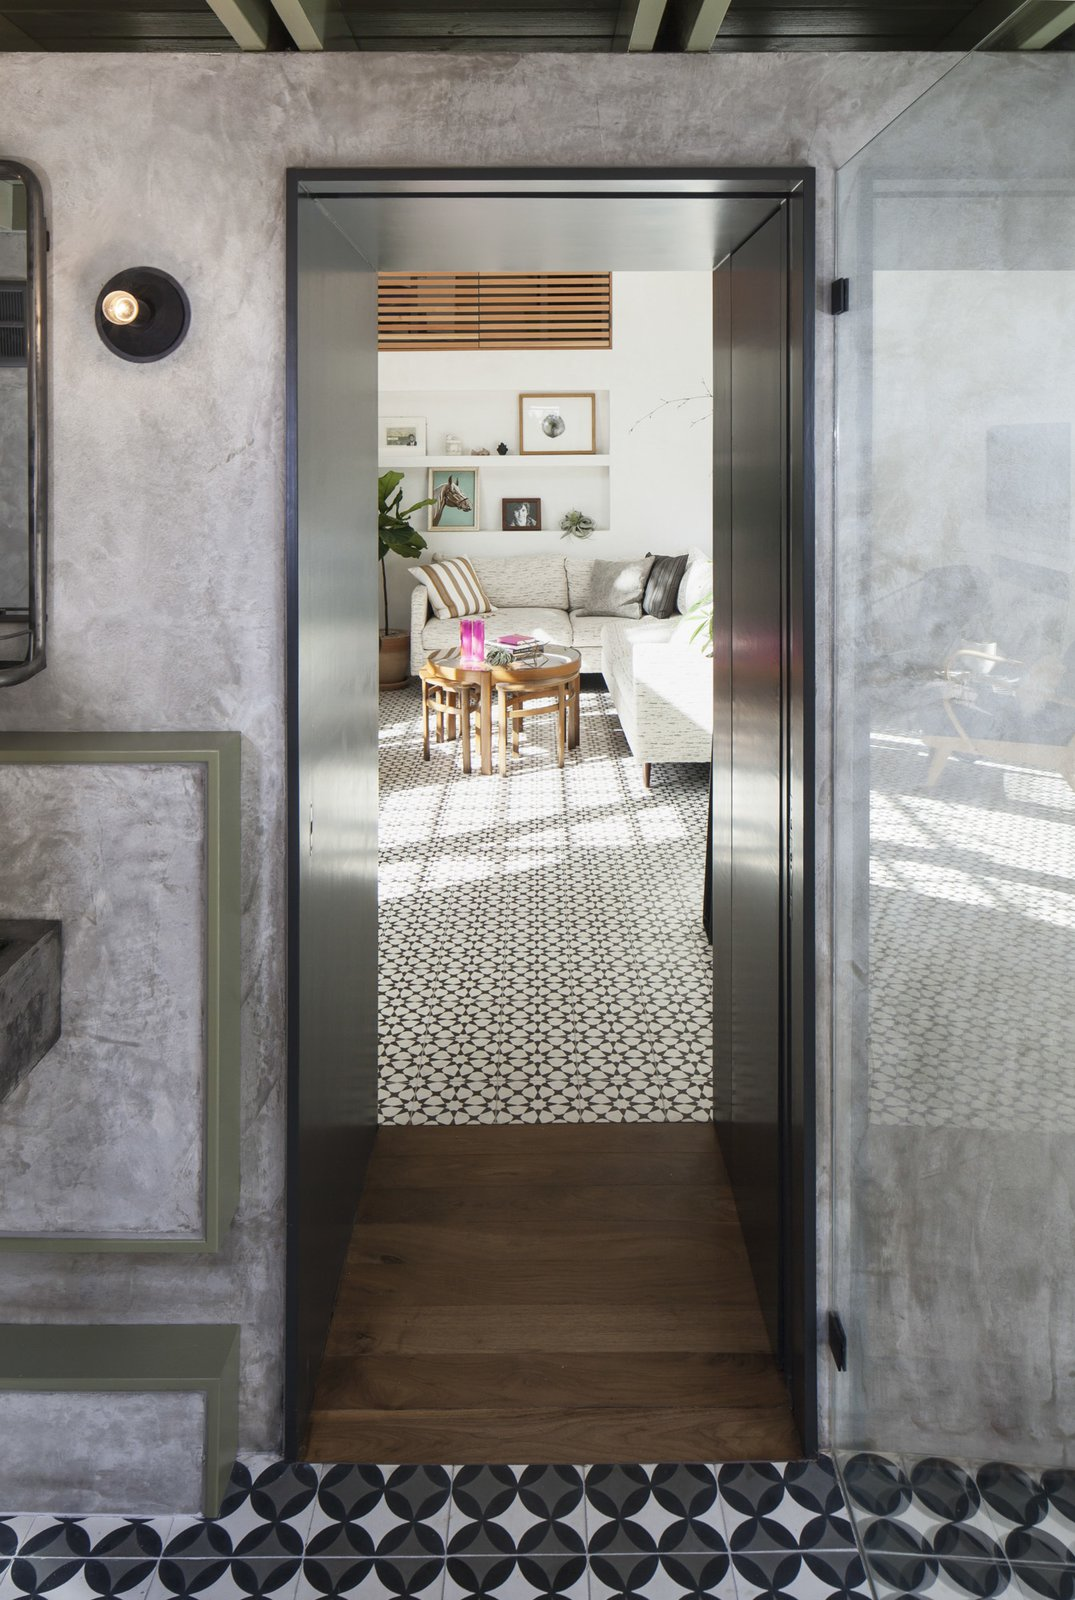 Doors and Interior Looking from the bathroom to the living space through the portal, which houses a small closet,  and also provides a spatial and material transition from private to public space .  Garner Pool & Casita